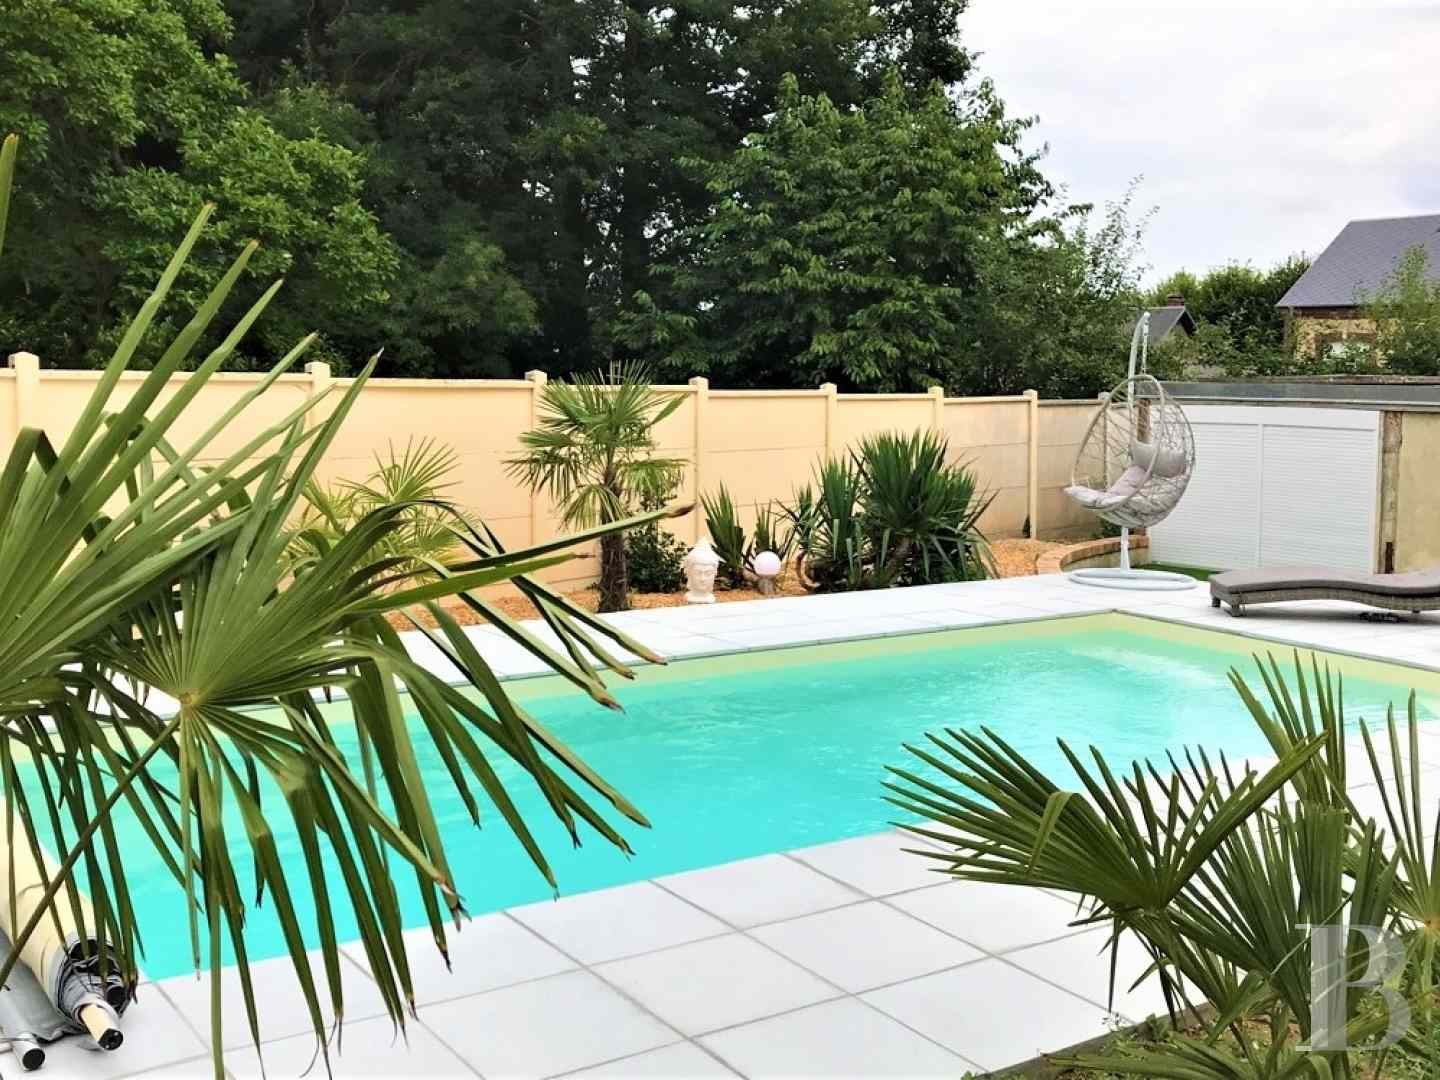 property for sale France upper normandy residences mansion - 9 zoom